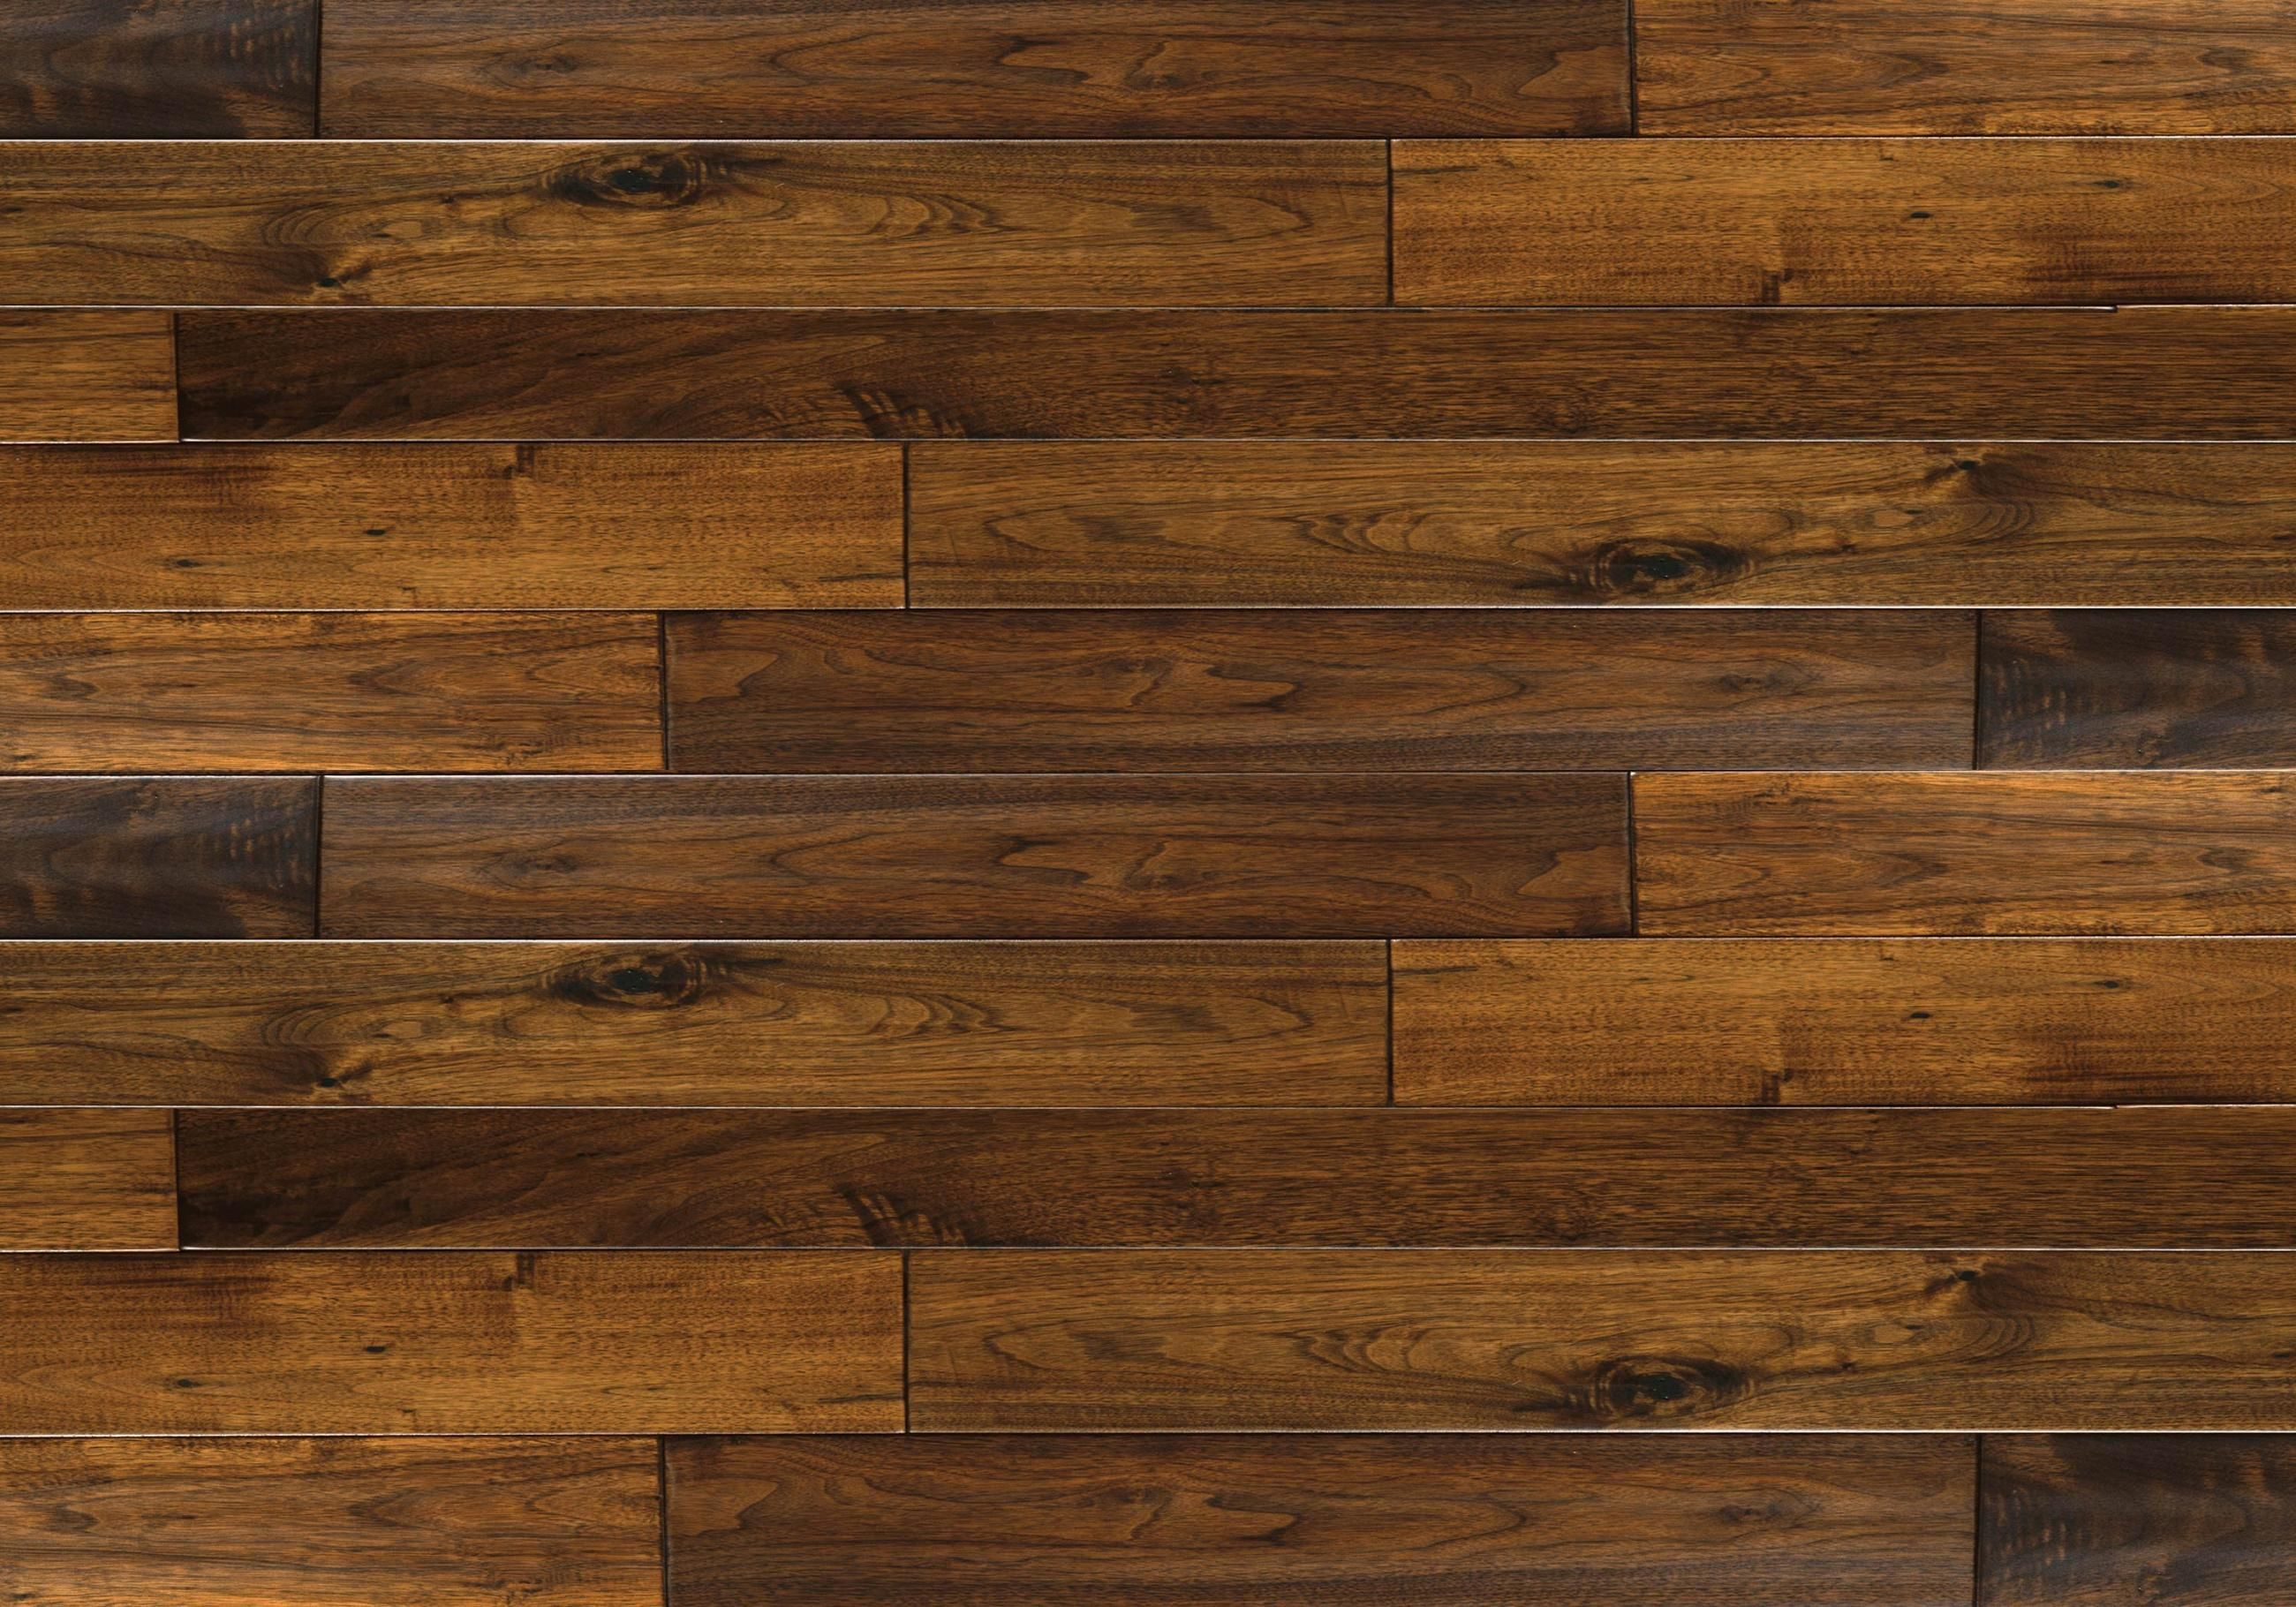 Parkettboden dunkel textur  Wood Floors Bellawood Hardwood Flooring 89 Engineered Hardwood ...